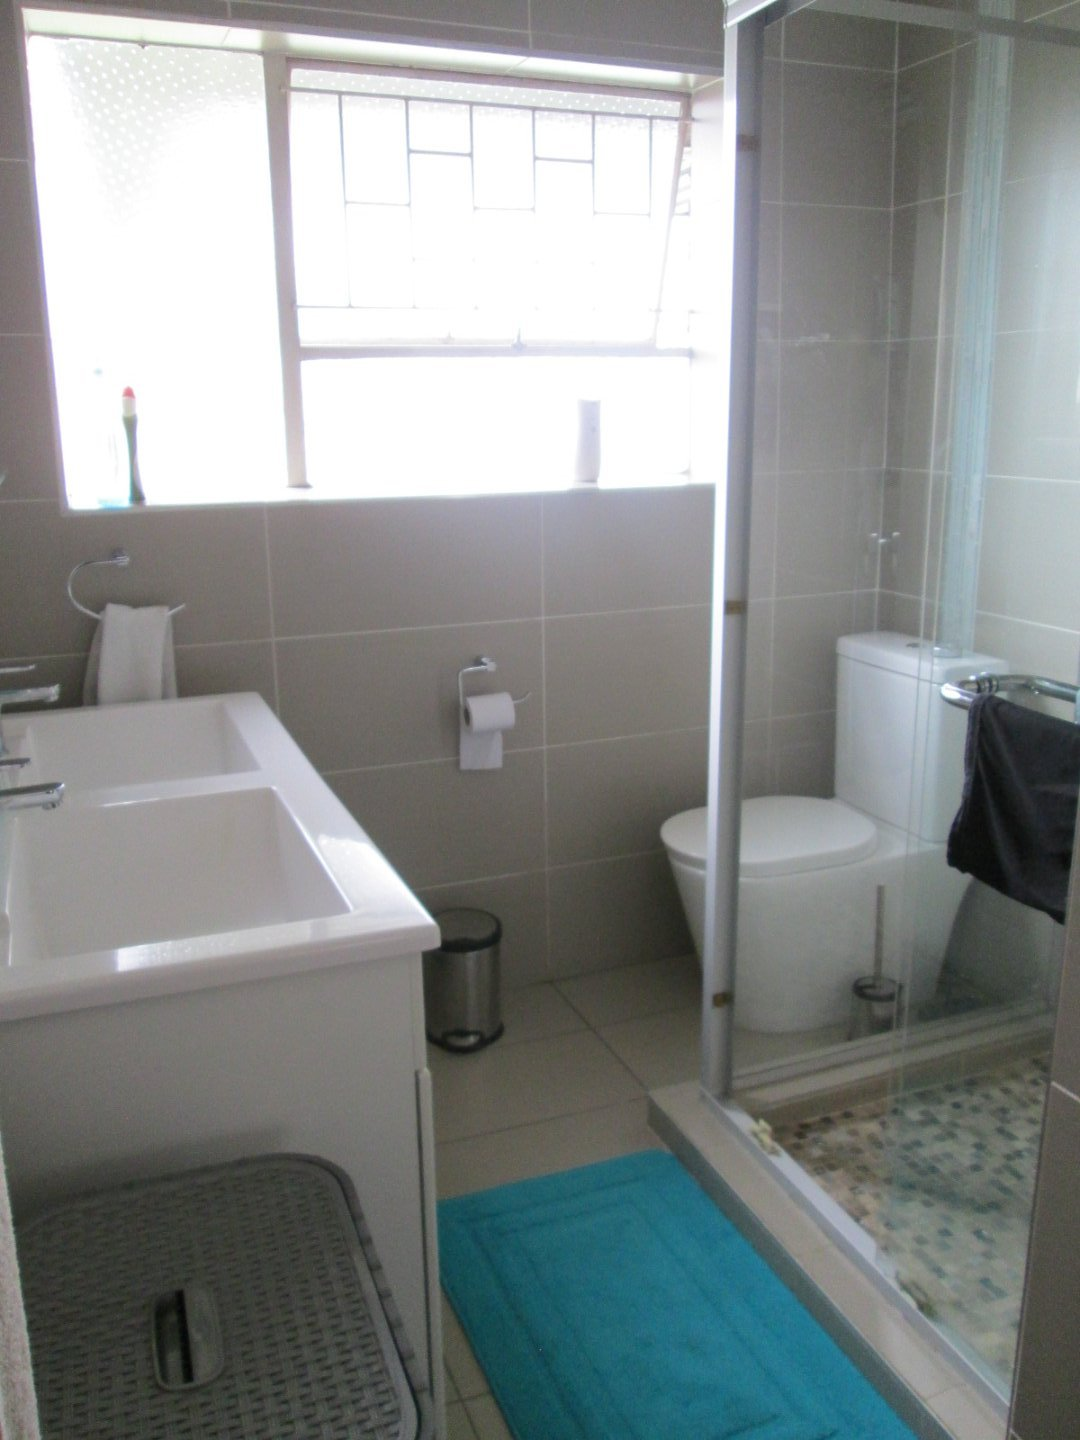 Verwoerdpark property for sale. Ref No: 13585676. Picture no 14